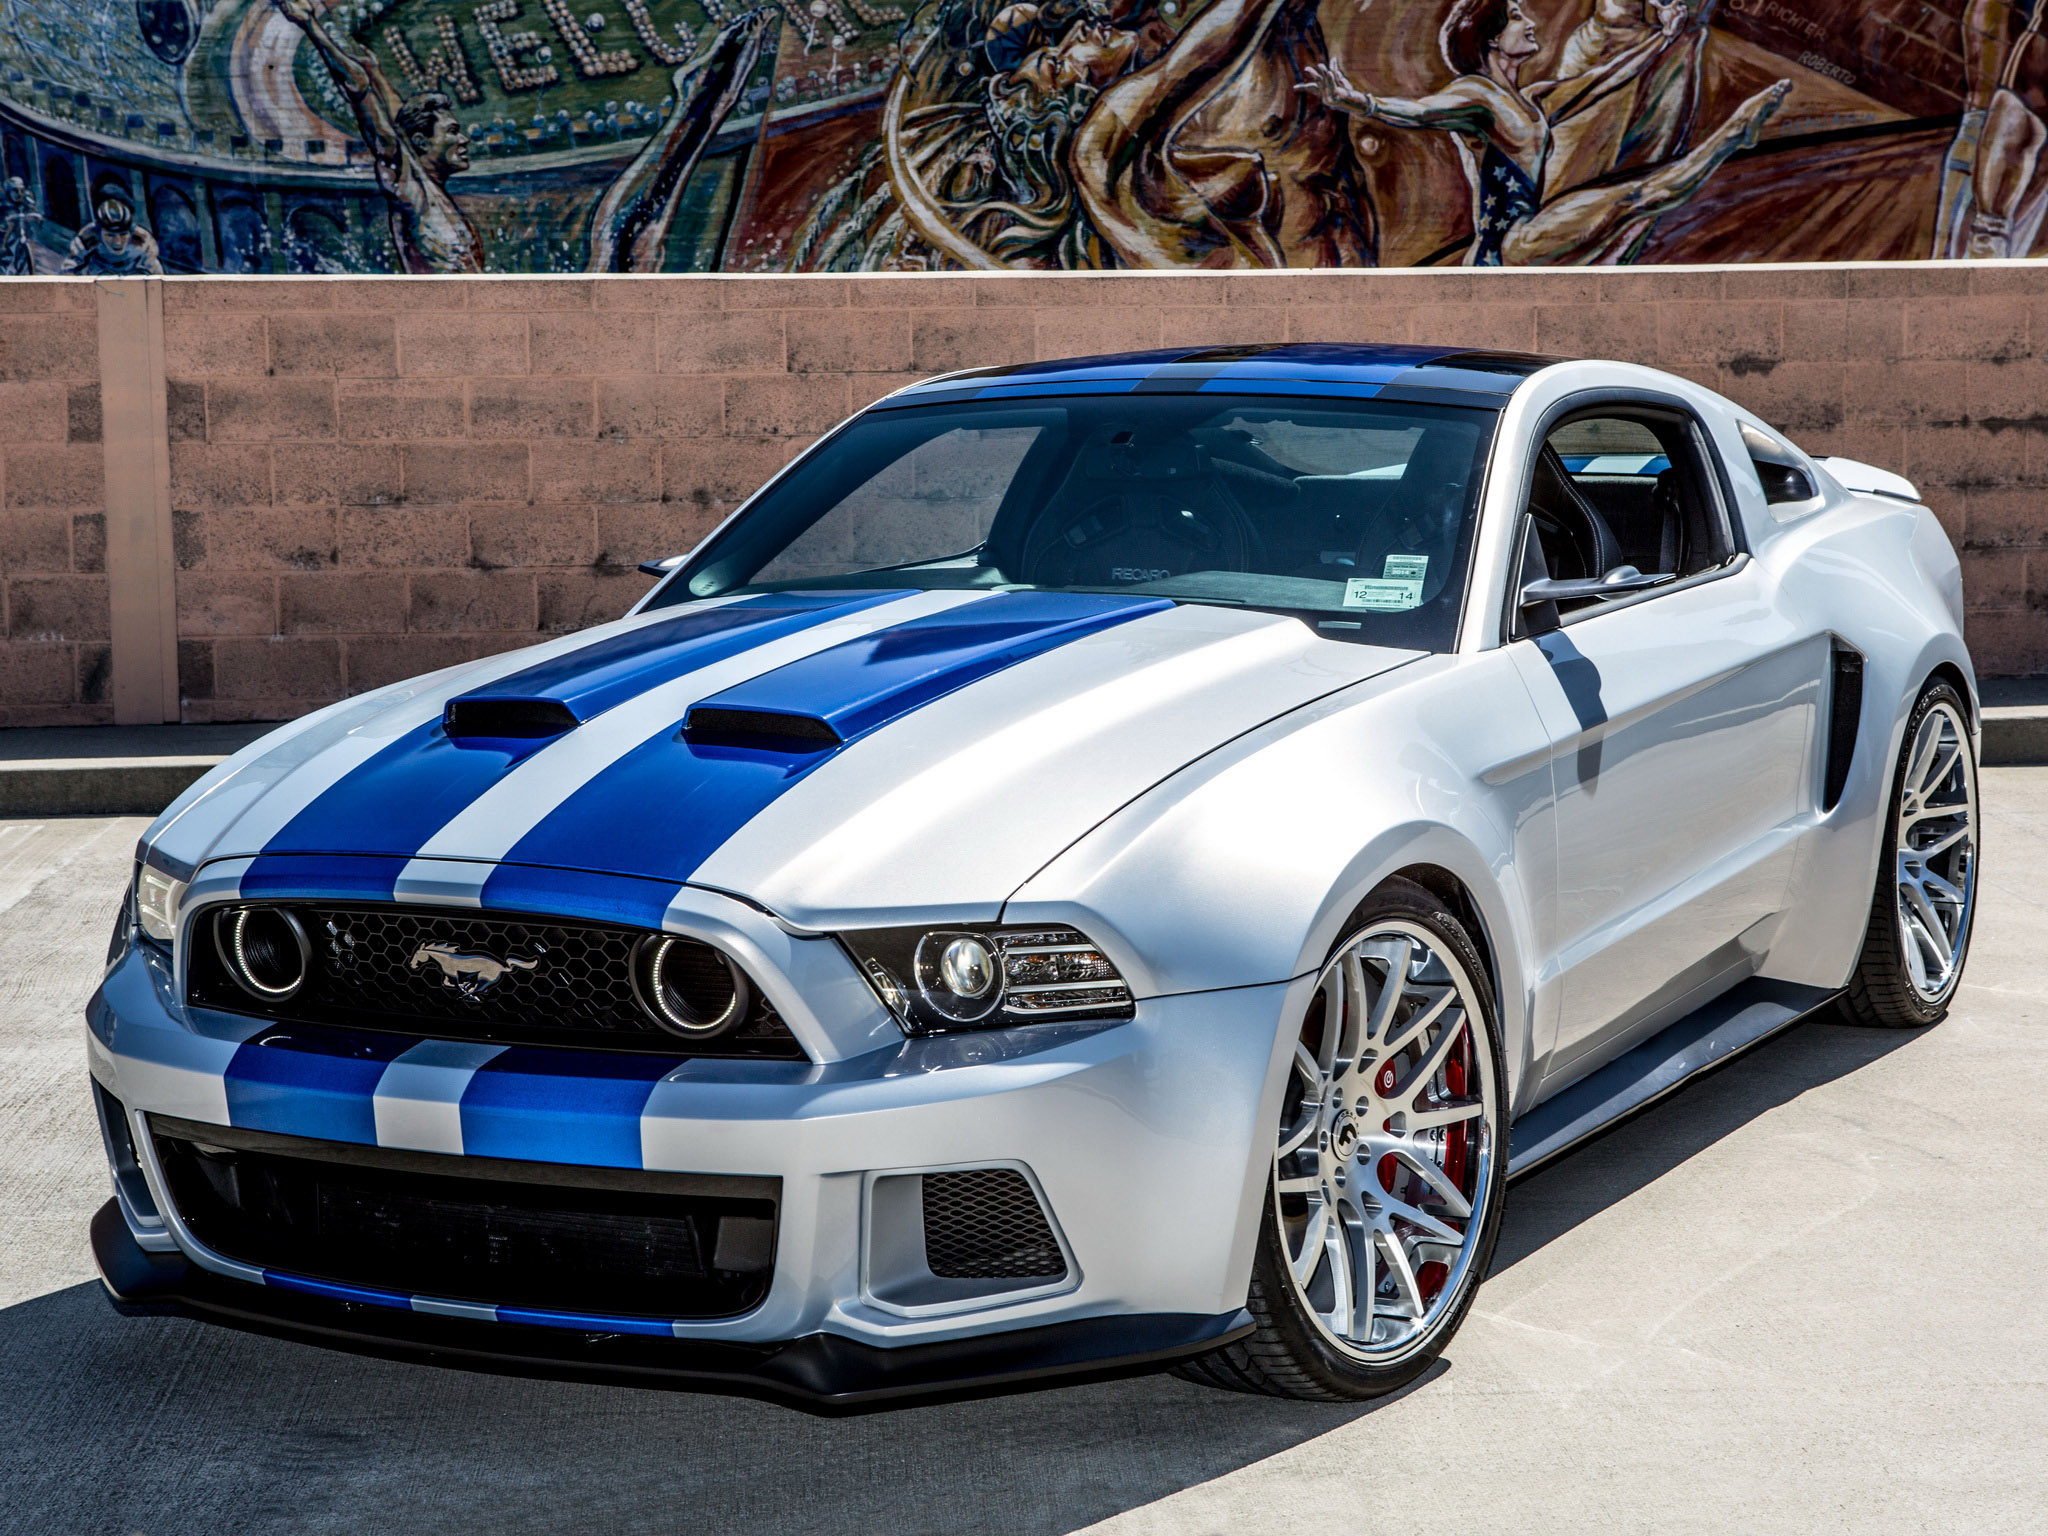 Top 5 best cars for tuning car news - Mustang modification ...